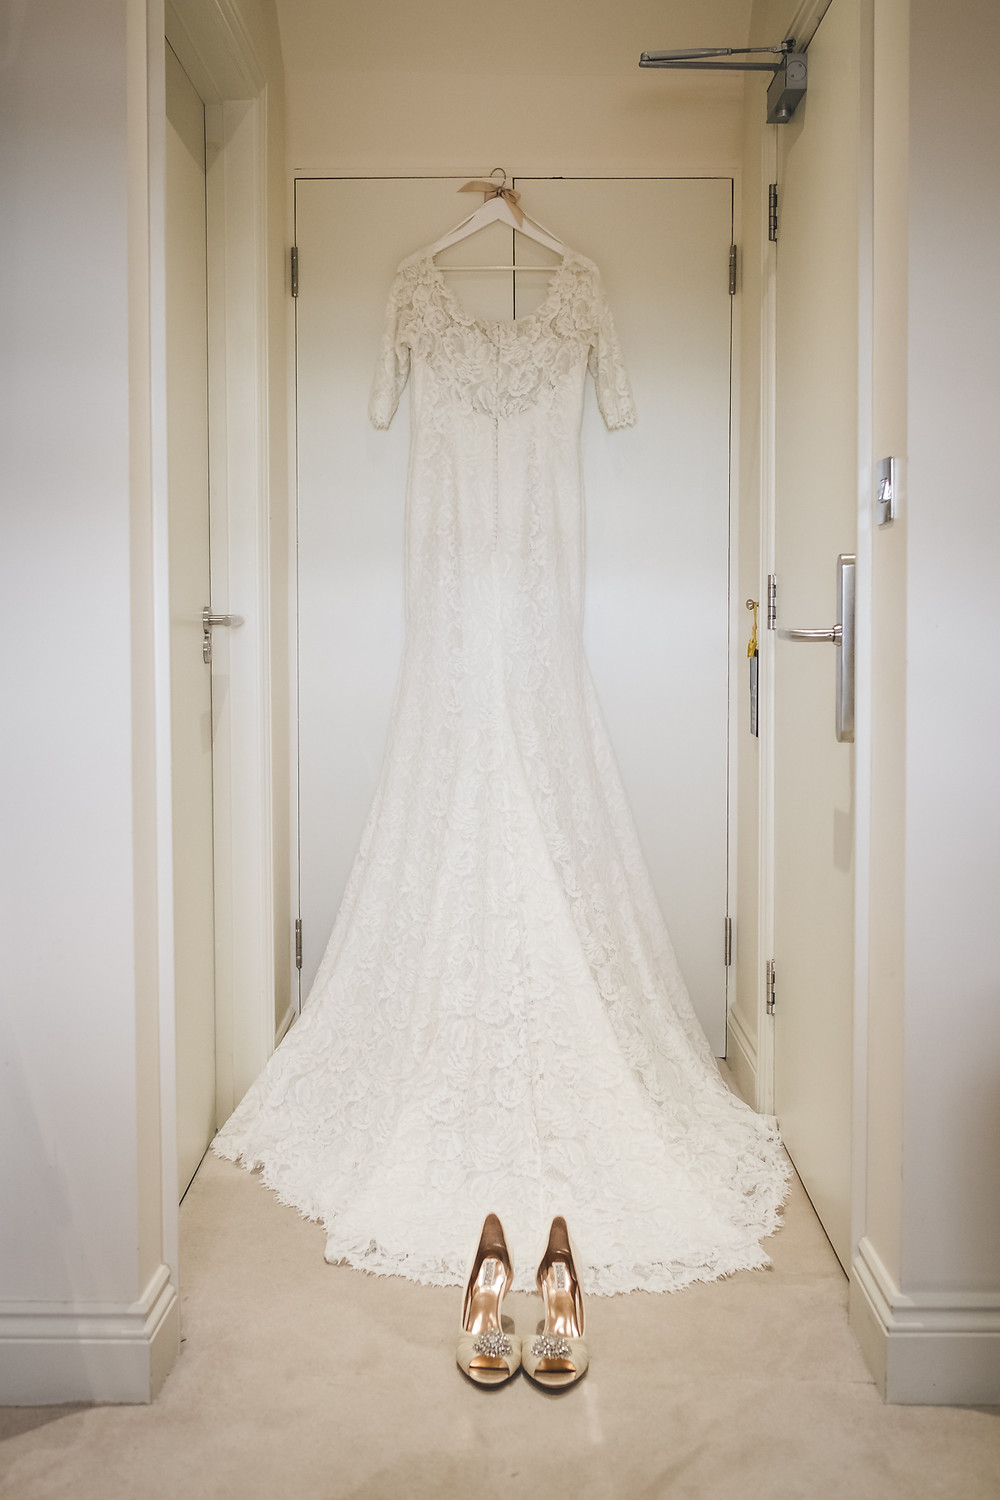 Wedding Dress by Pronovias from Evelyn Bridal, Huddersfield.